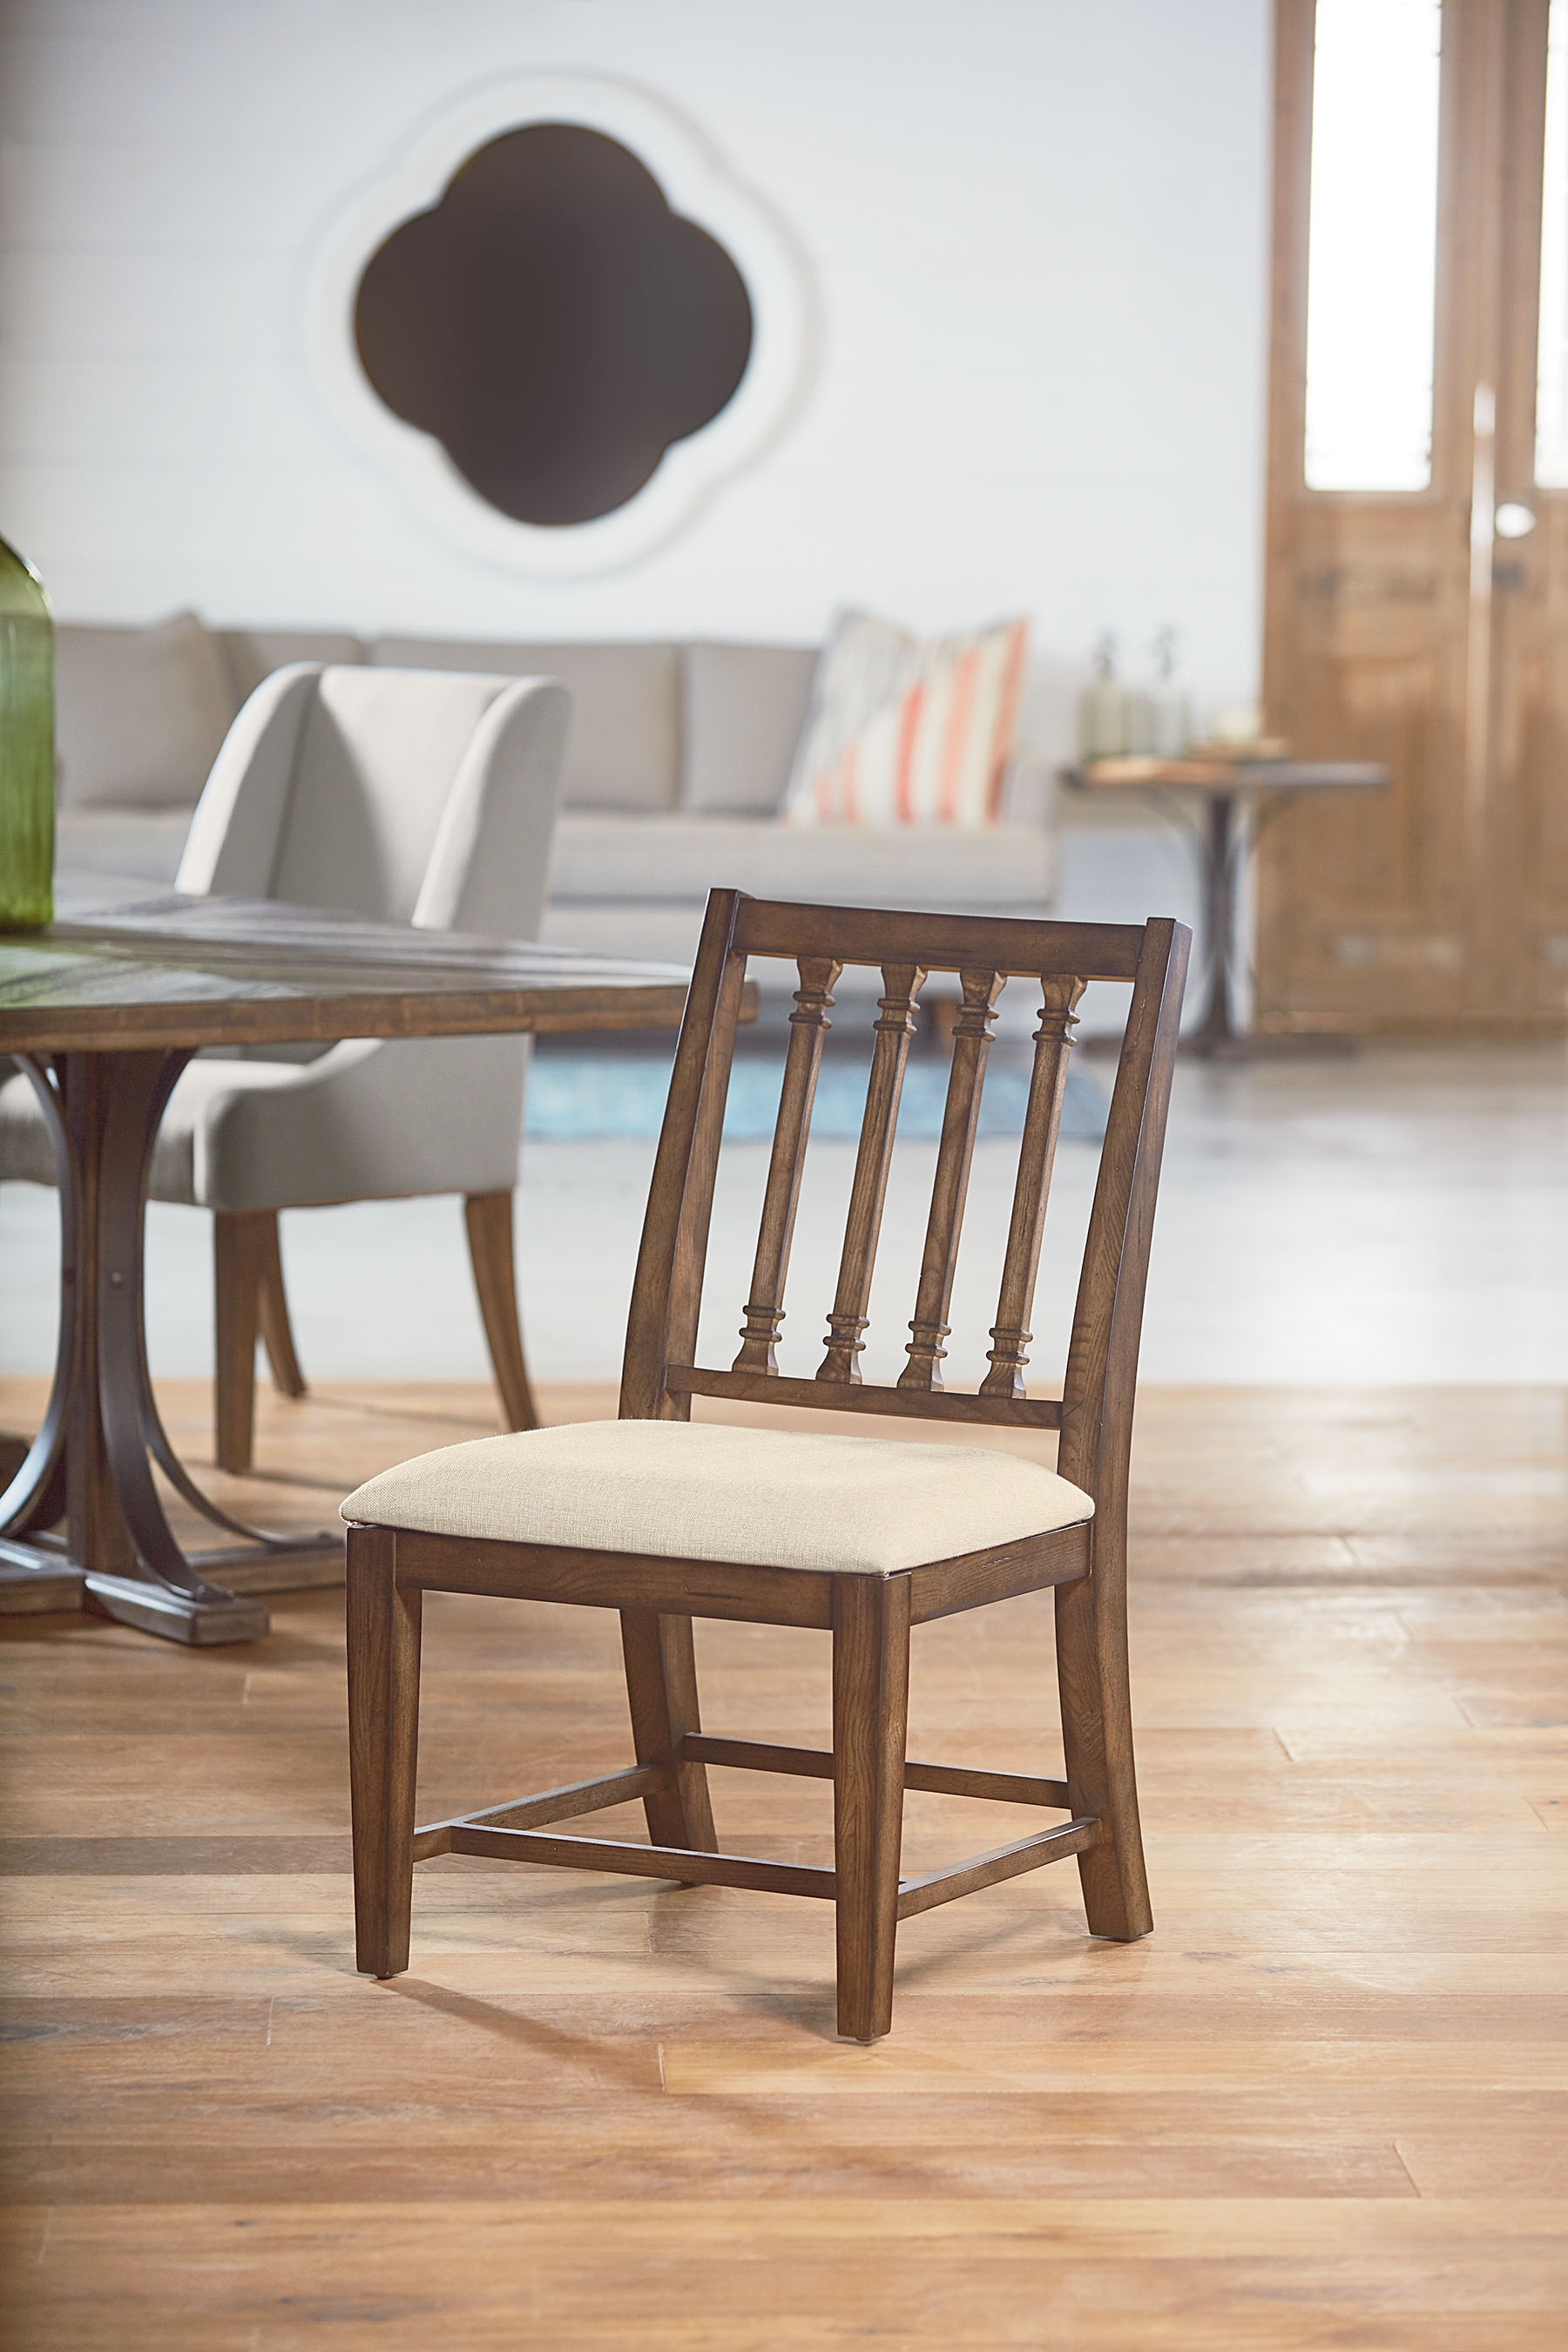 Most Current Magnolia Home Revival Side Chairs Regarding Revival Side Chair – Magnolia Home (View 2 of 20)